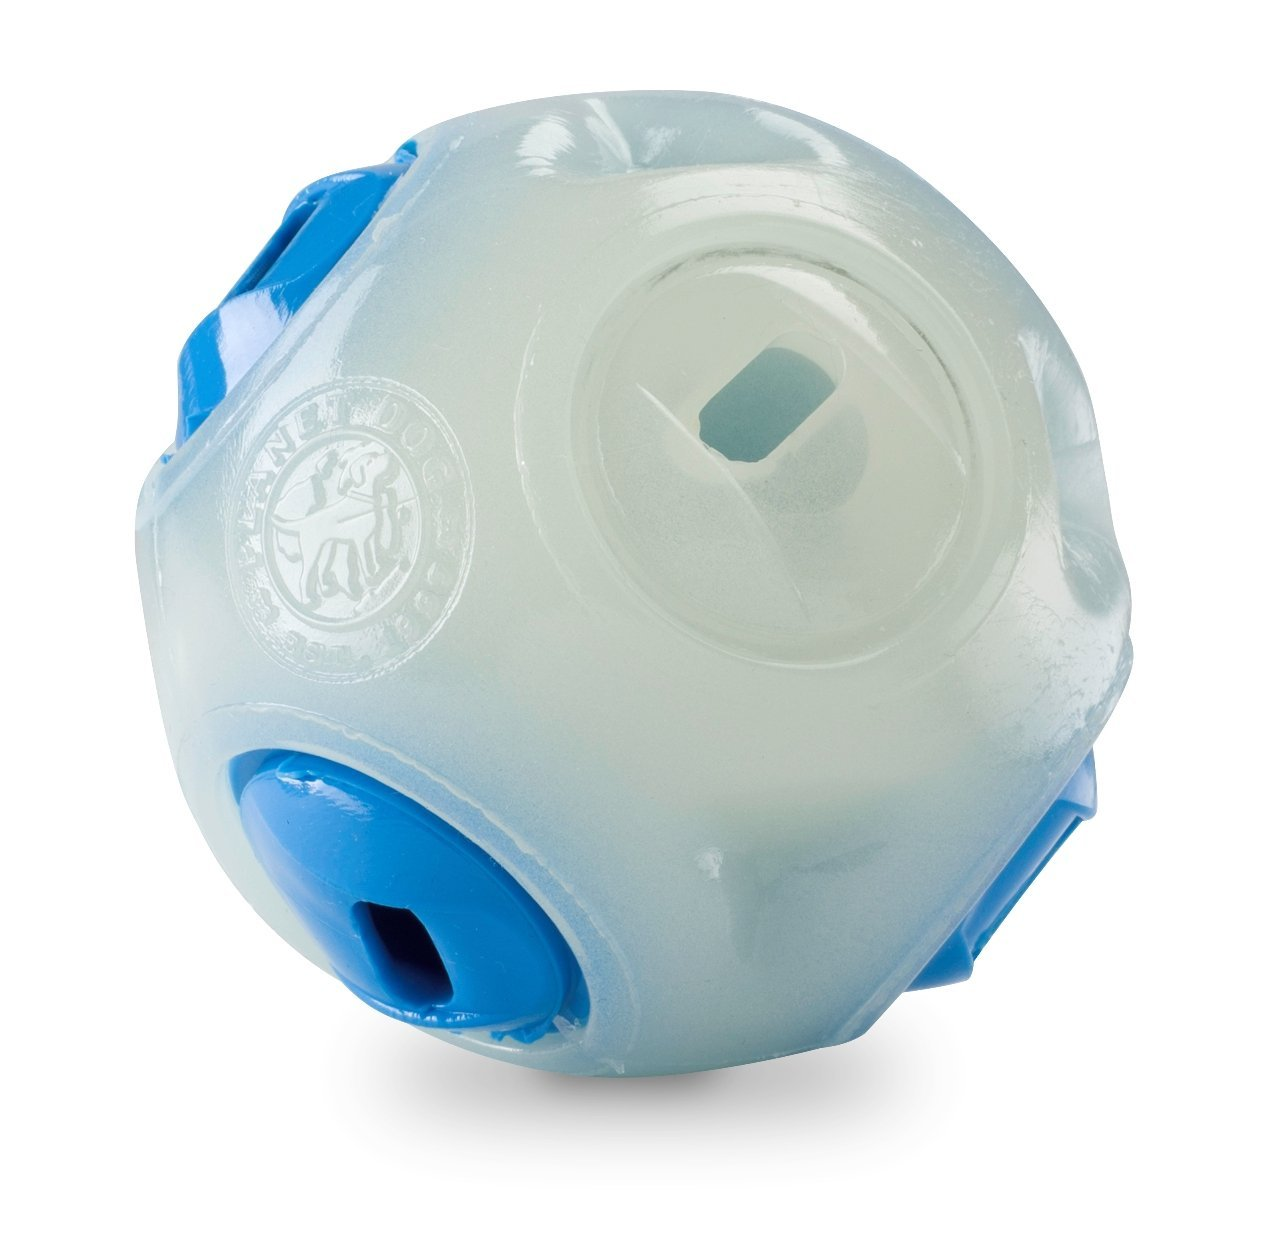 Orbee-Tuff Whistle Ball Dog Toy, Made in the USA, by Plan...